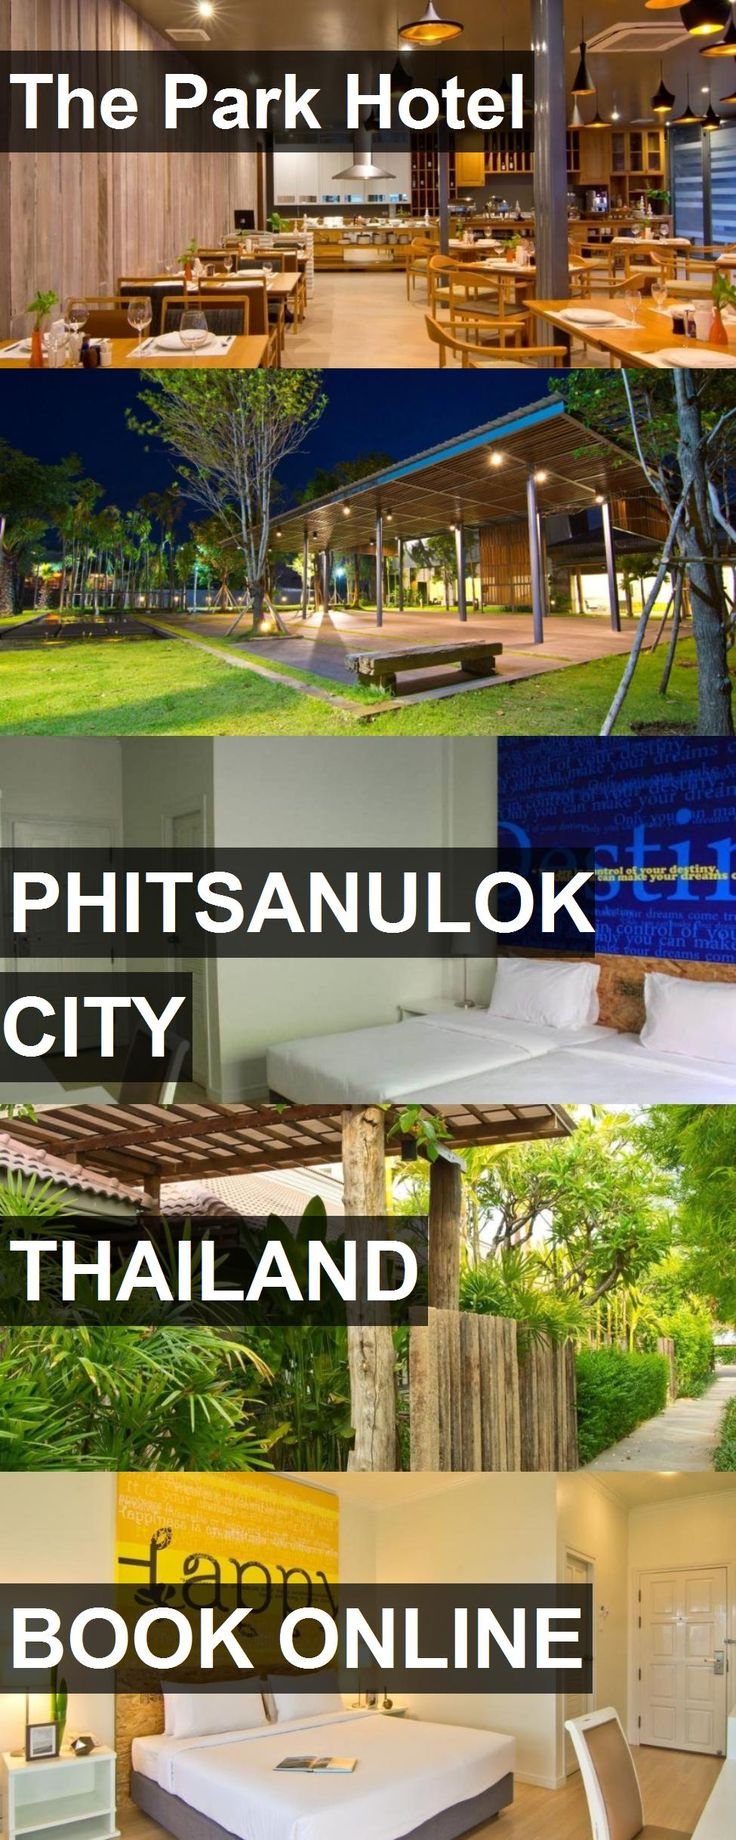 The Park Hotel in Phitsanulok City, Thailand. For more information, photos, reviews and best prices please follow the link. #Thailand #PhitsanulokCity #travel #vacation #hotel